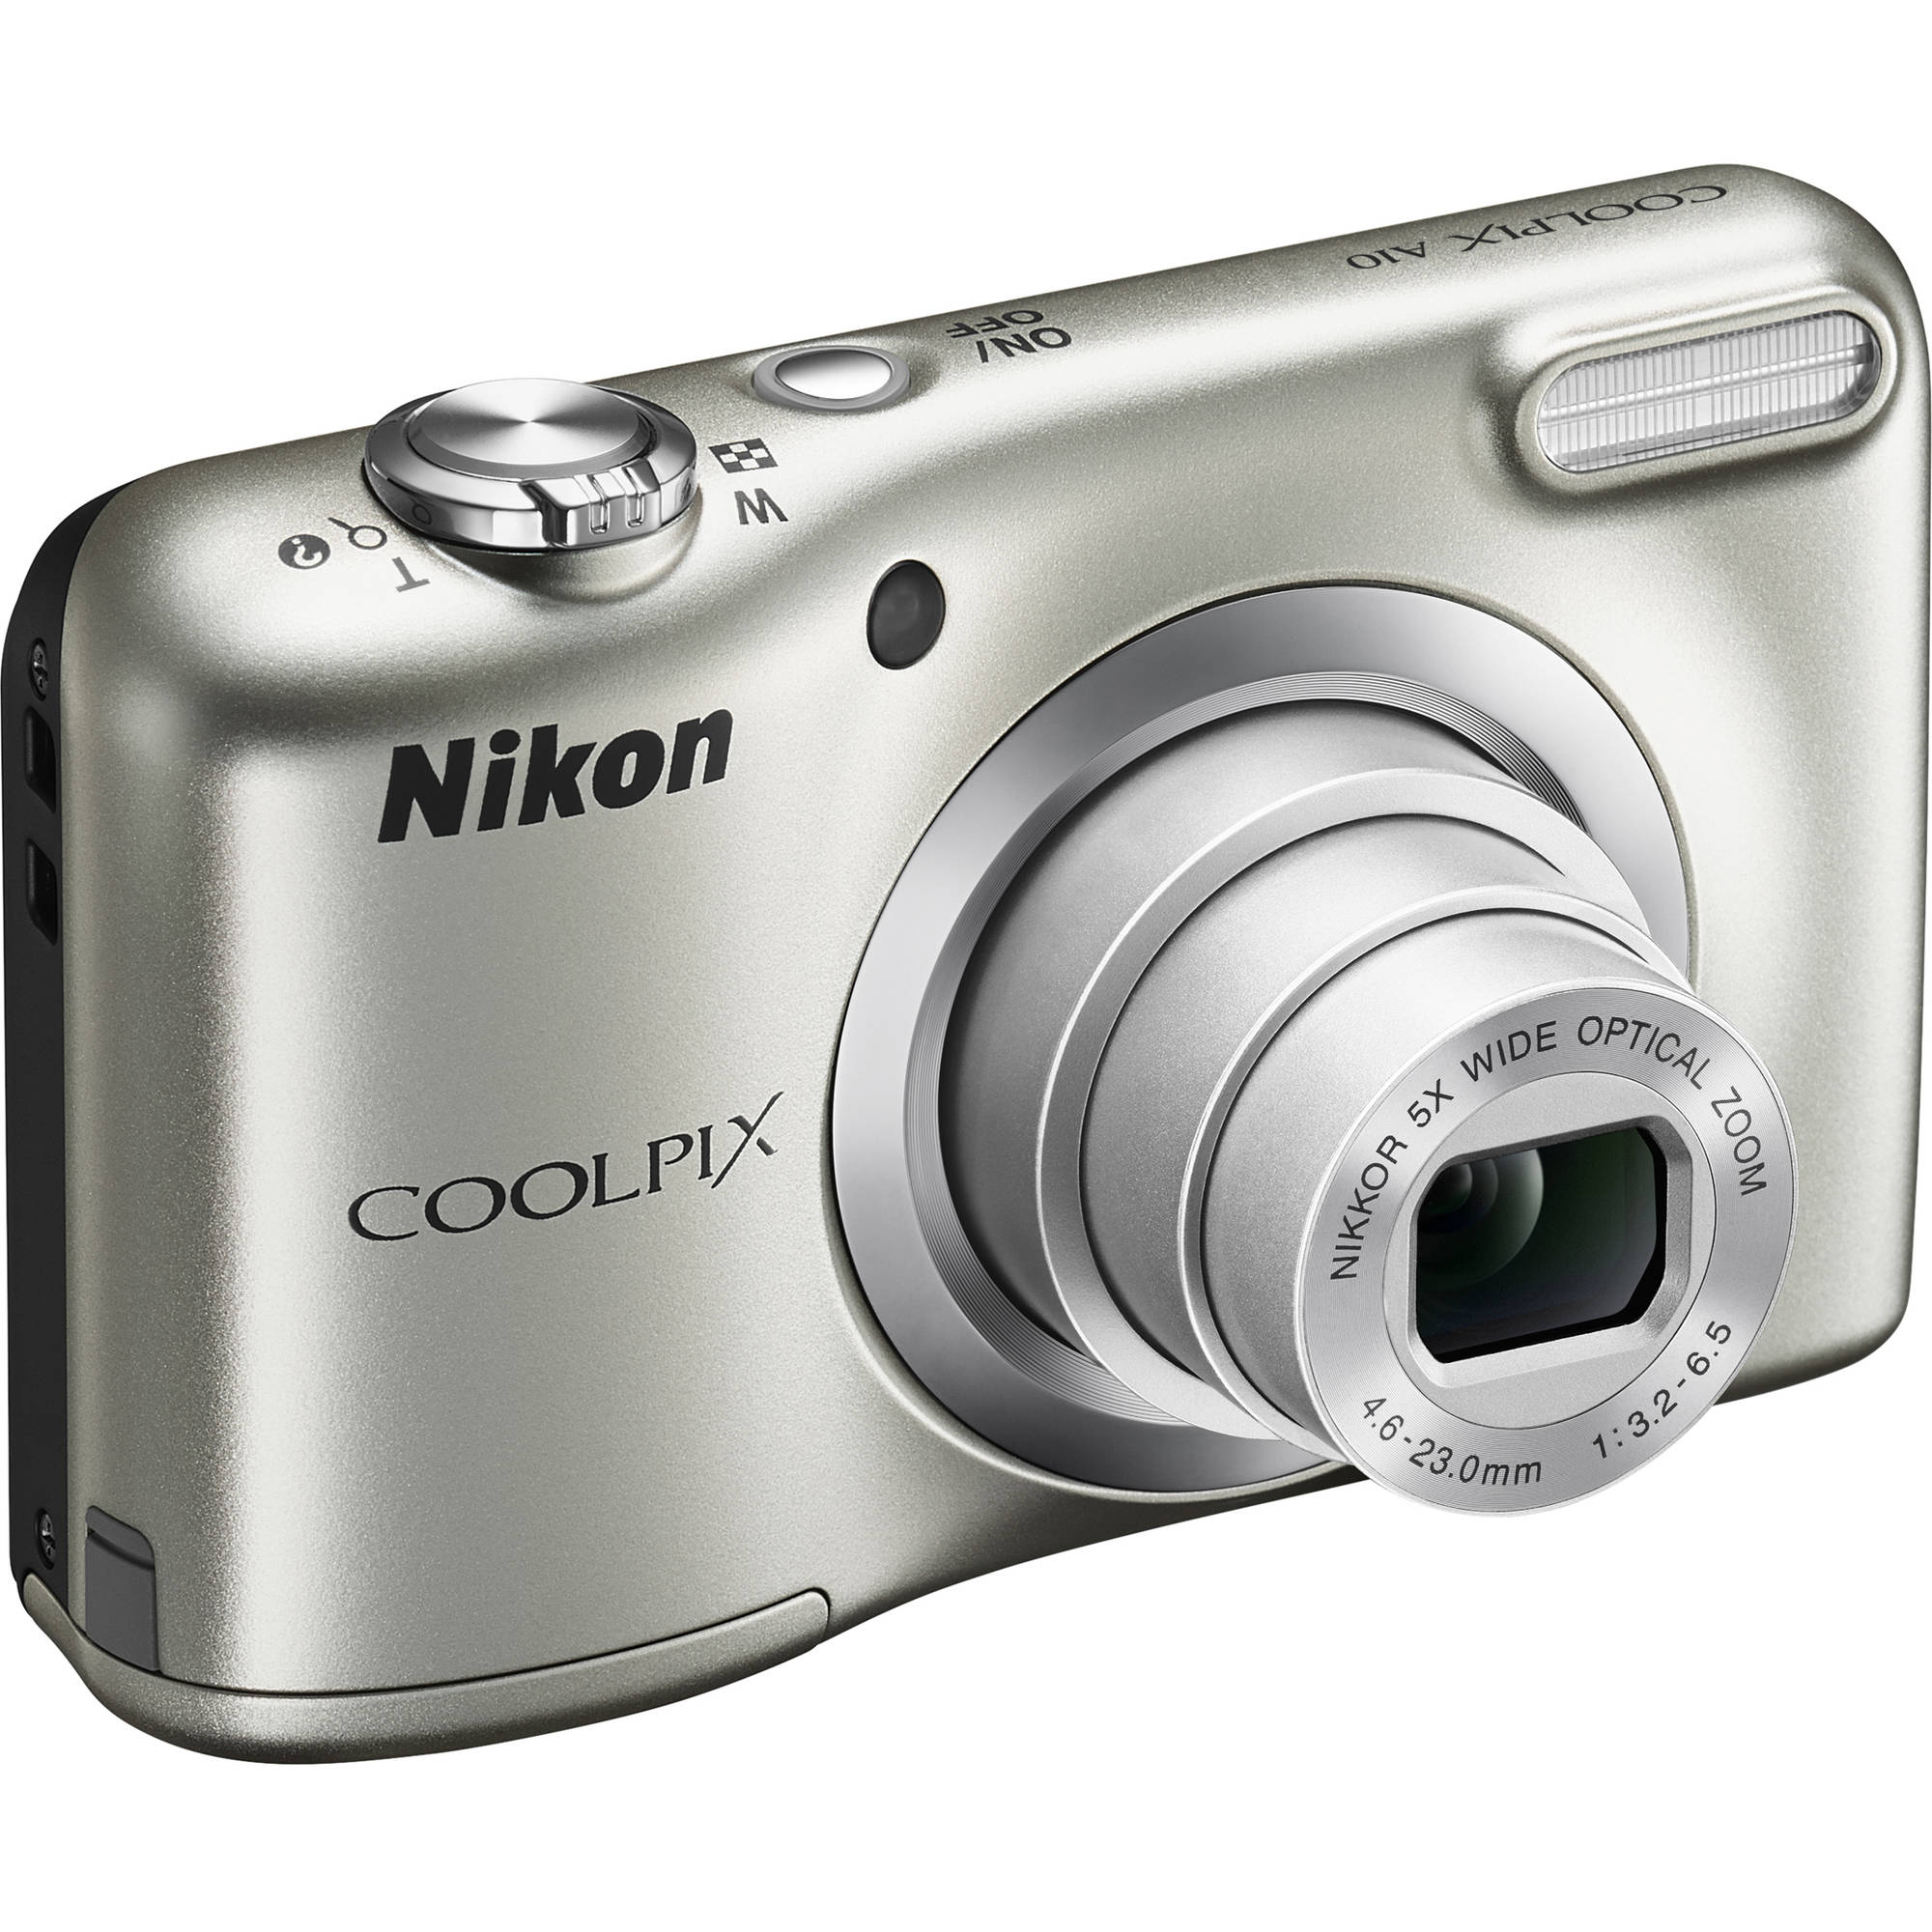 Nikon COOLPIX A10 Digital Camera with 16.1 Megapixels and 5x Optical Zoom